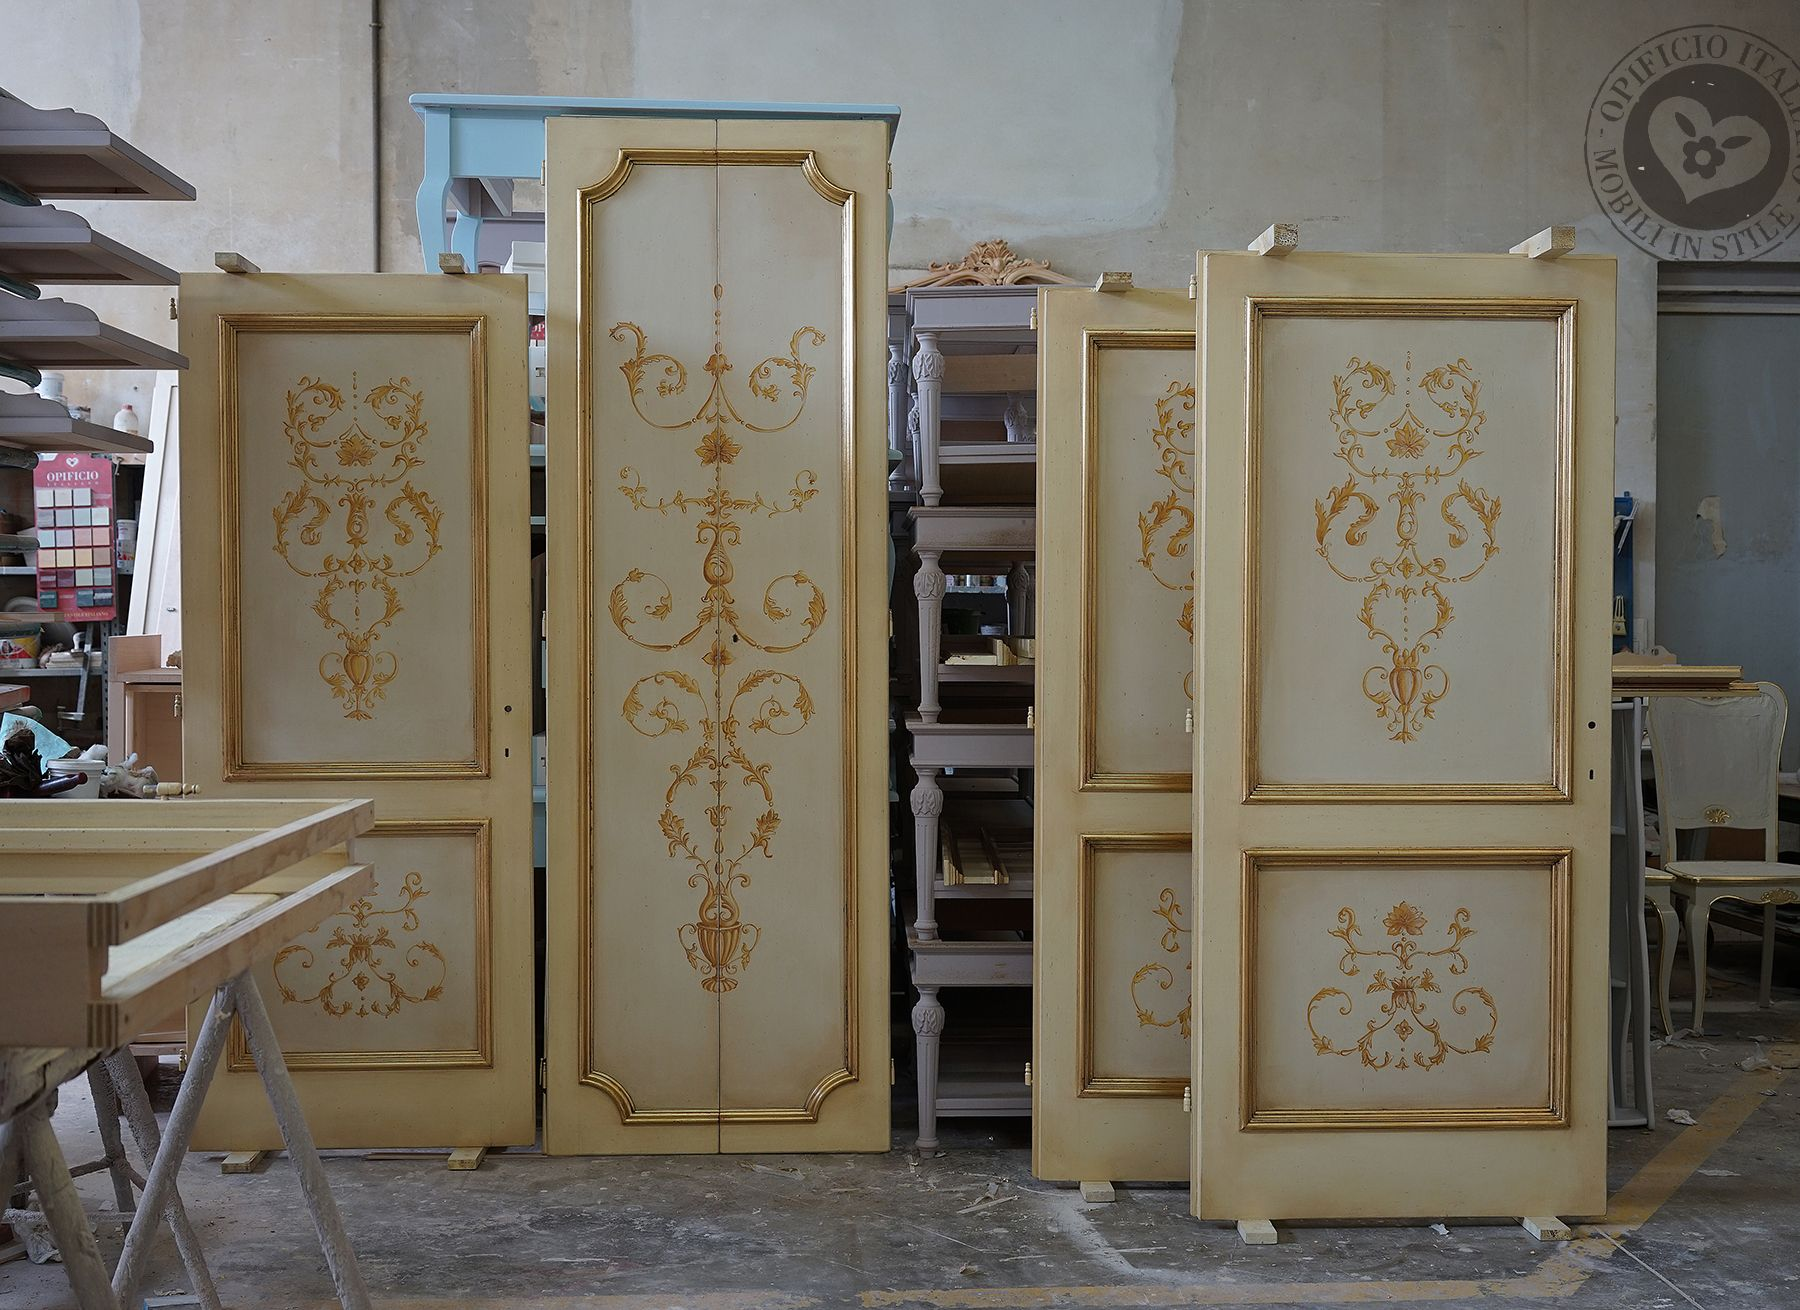 Porte decorate in legno massello laccate e decorate a mano con la ...